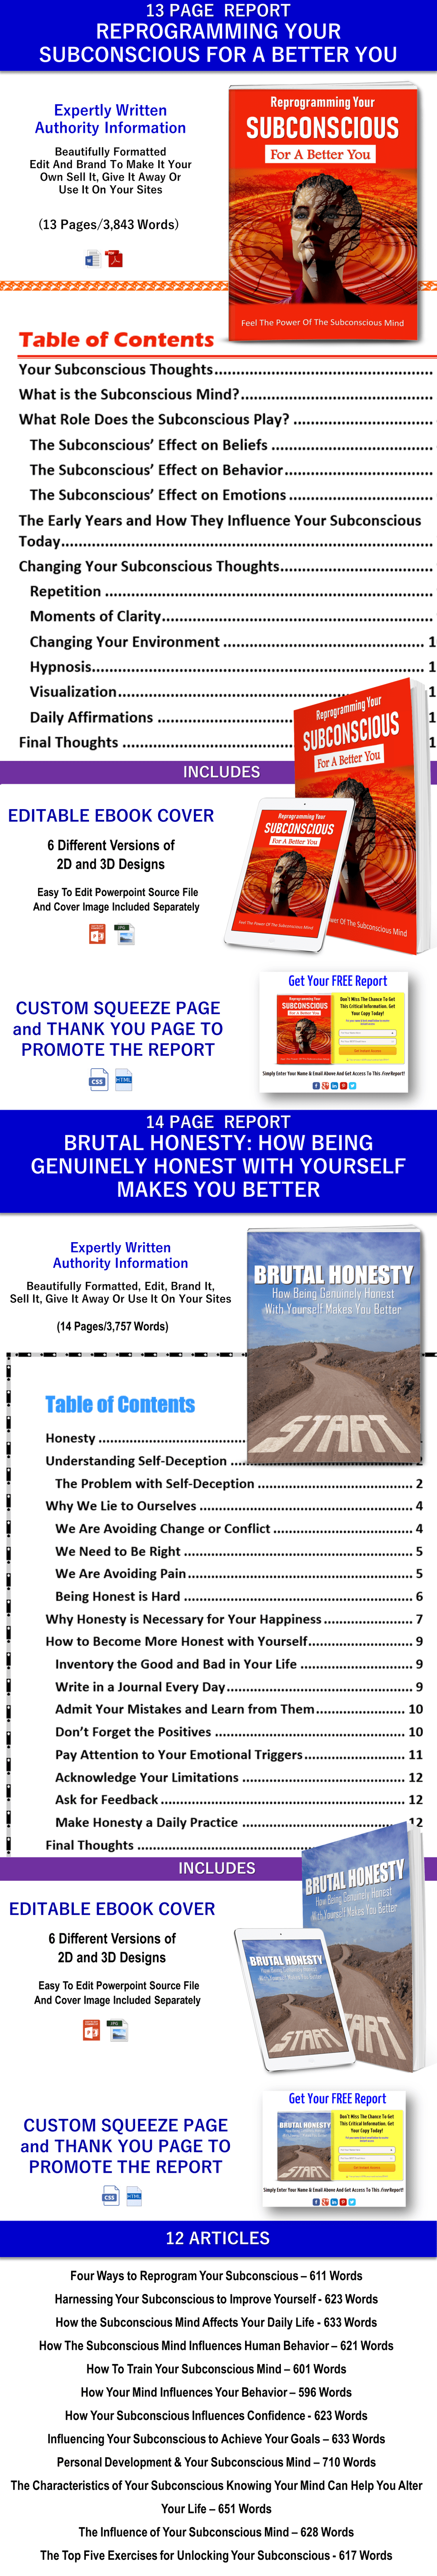 Reprogramming Your Subconscious and Brutal Honesty Self Help PLR